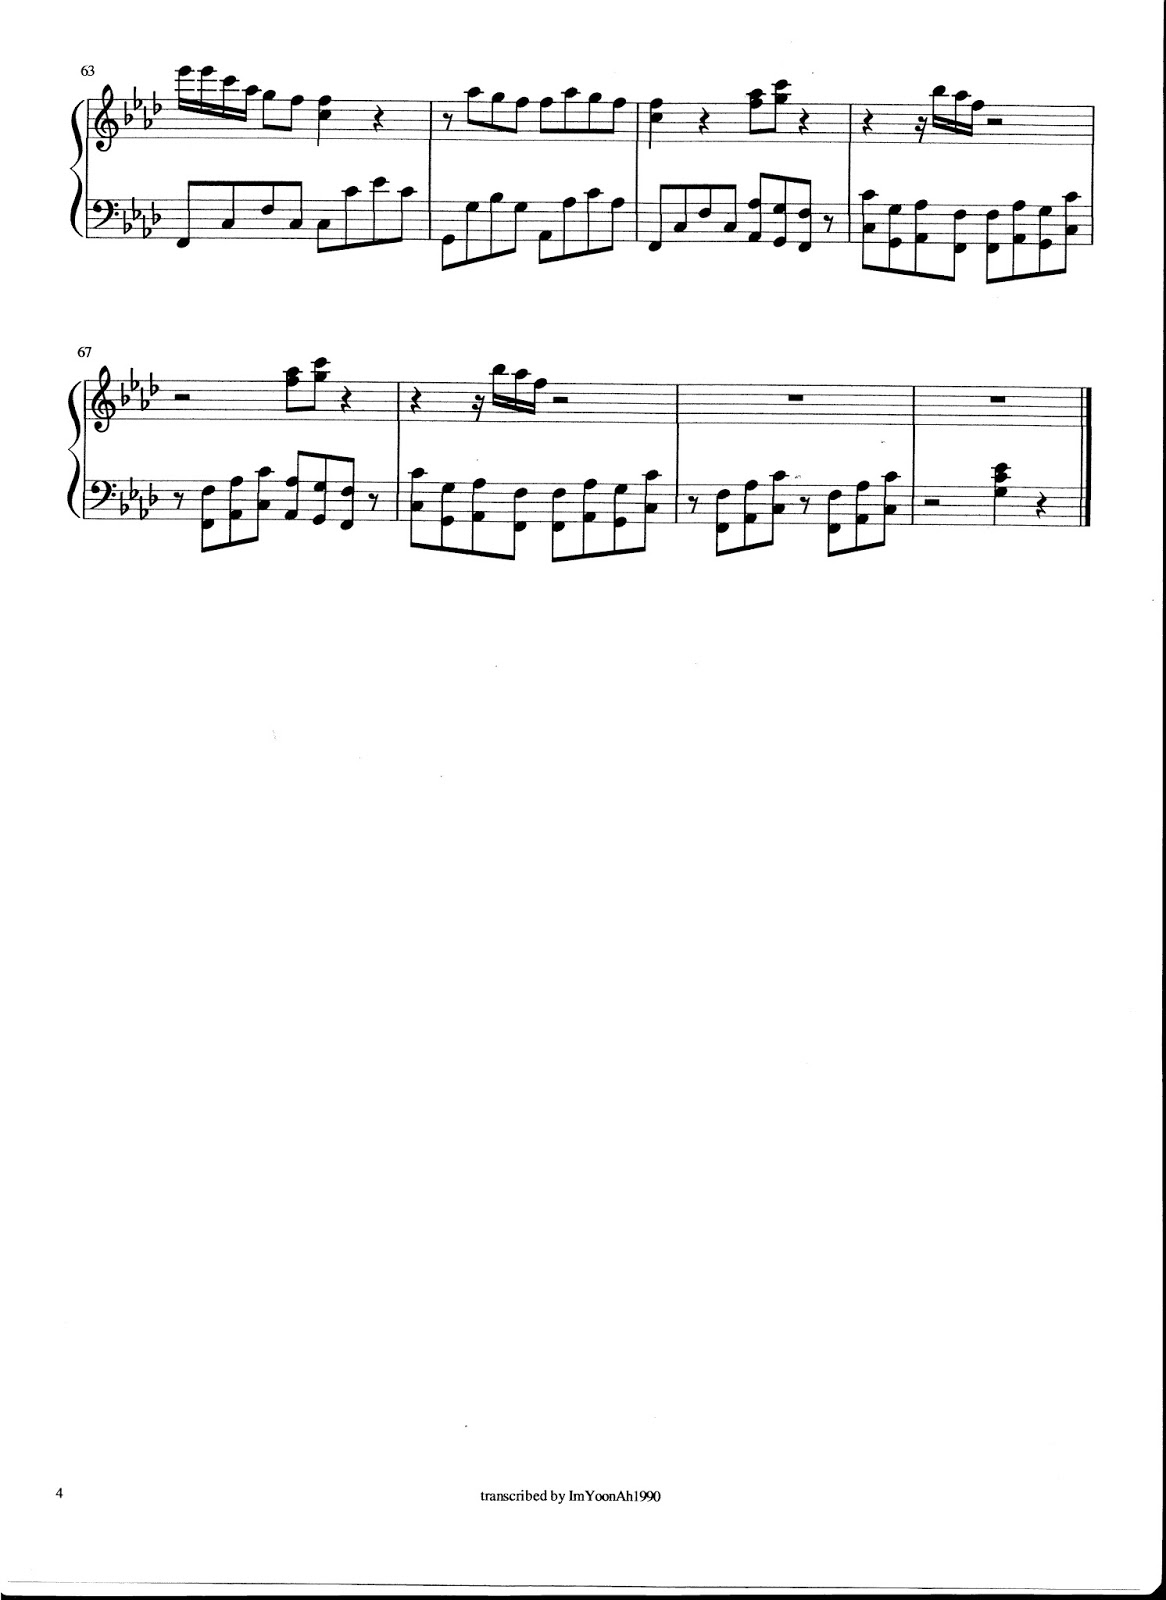 korean drama piano sheet pdf